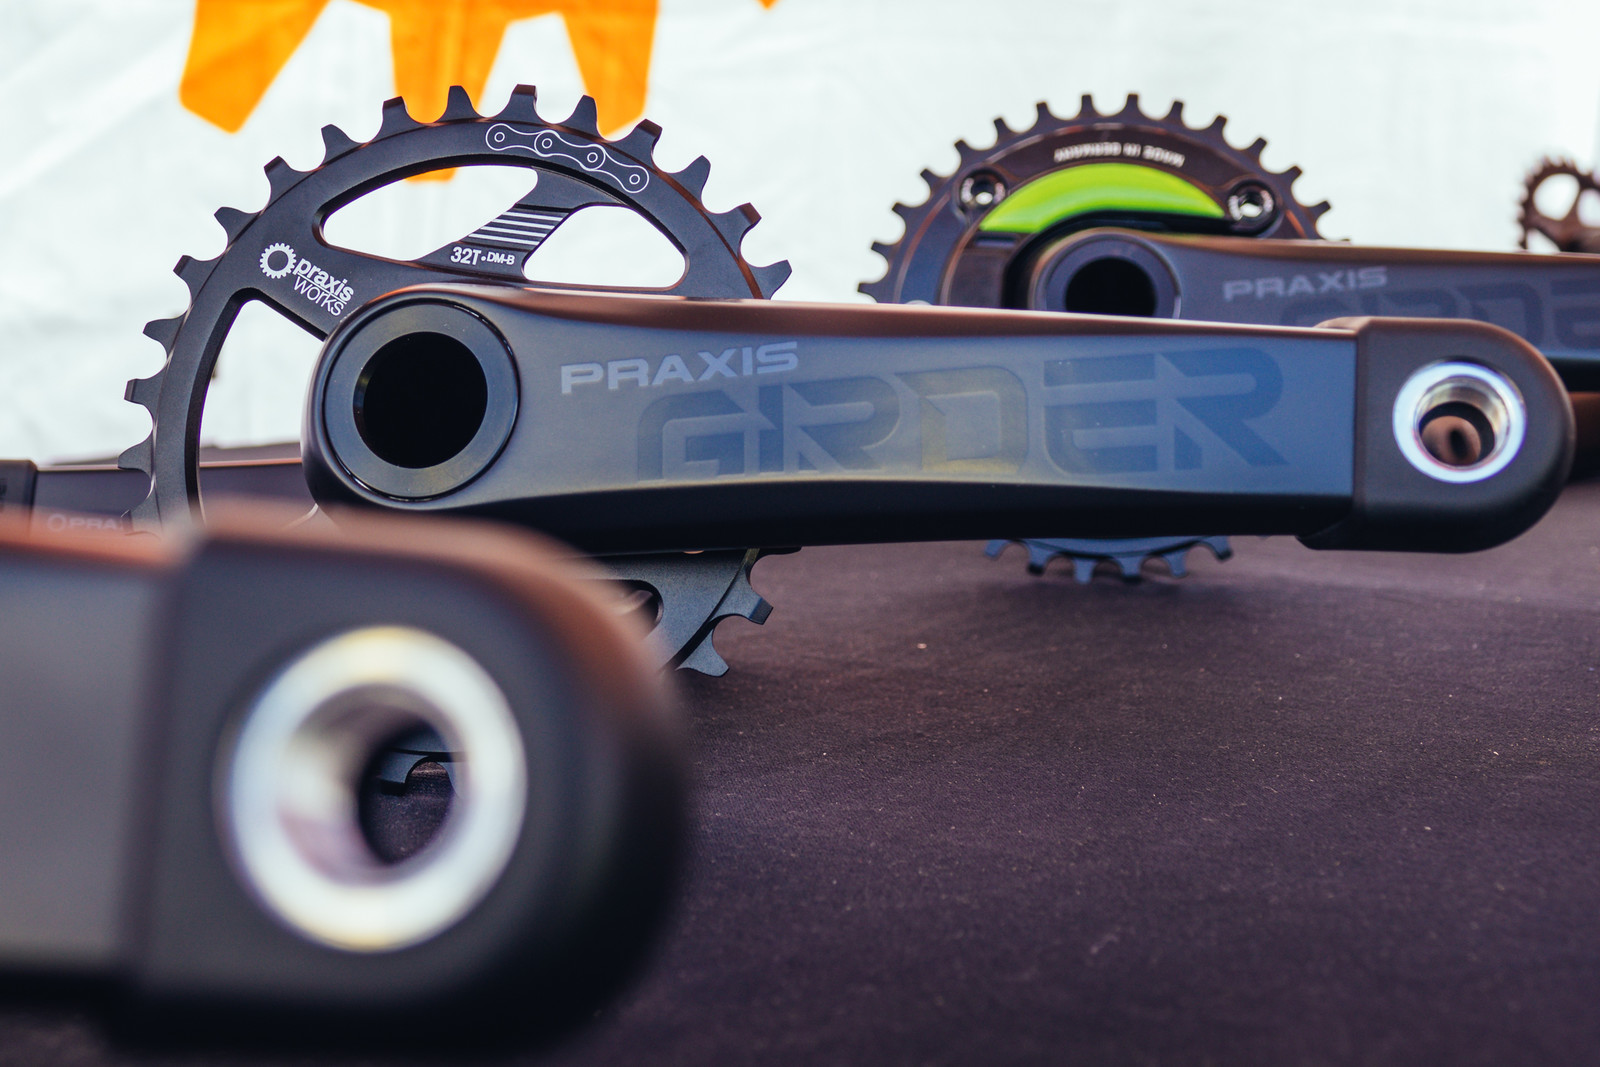 Maximize Bang for Your Buck with the New Praxis Girder Carbon Cranks - Sea Otter Classic